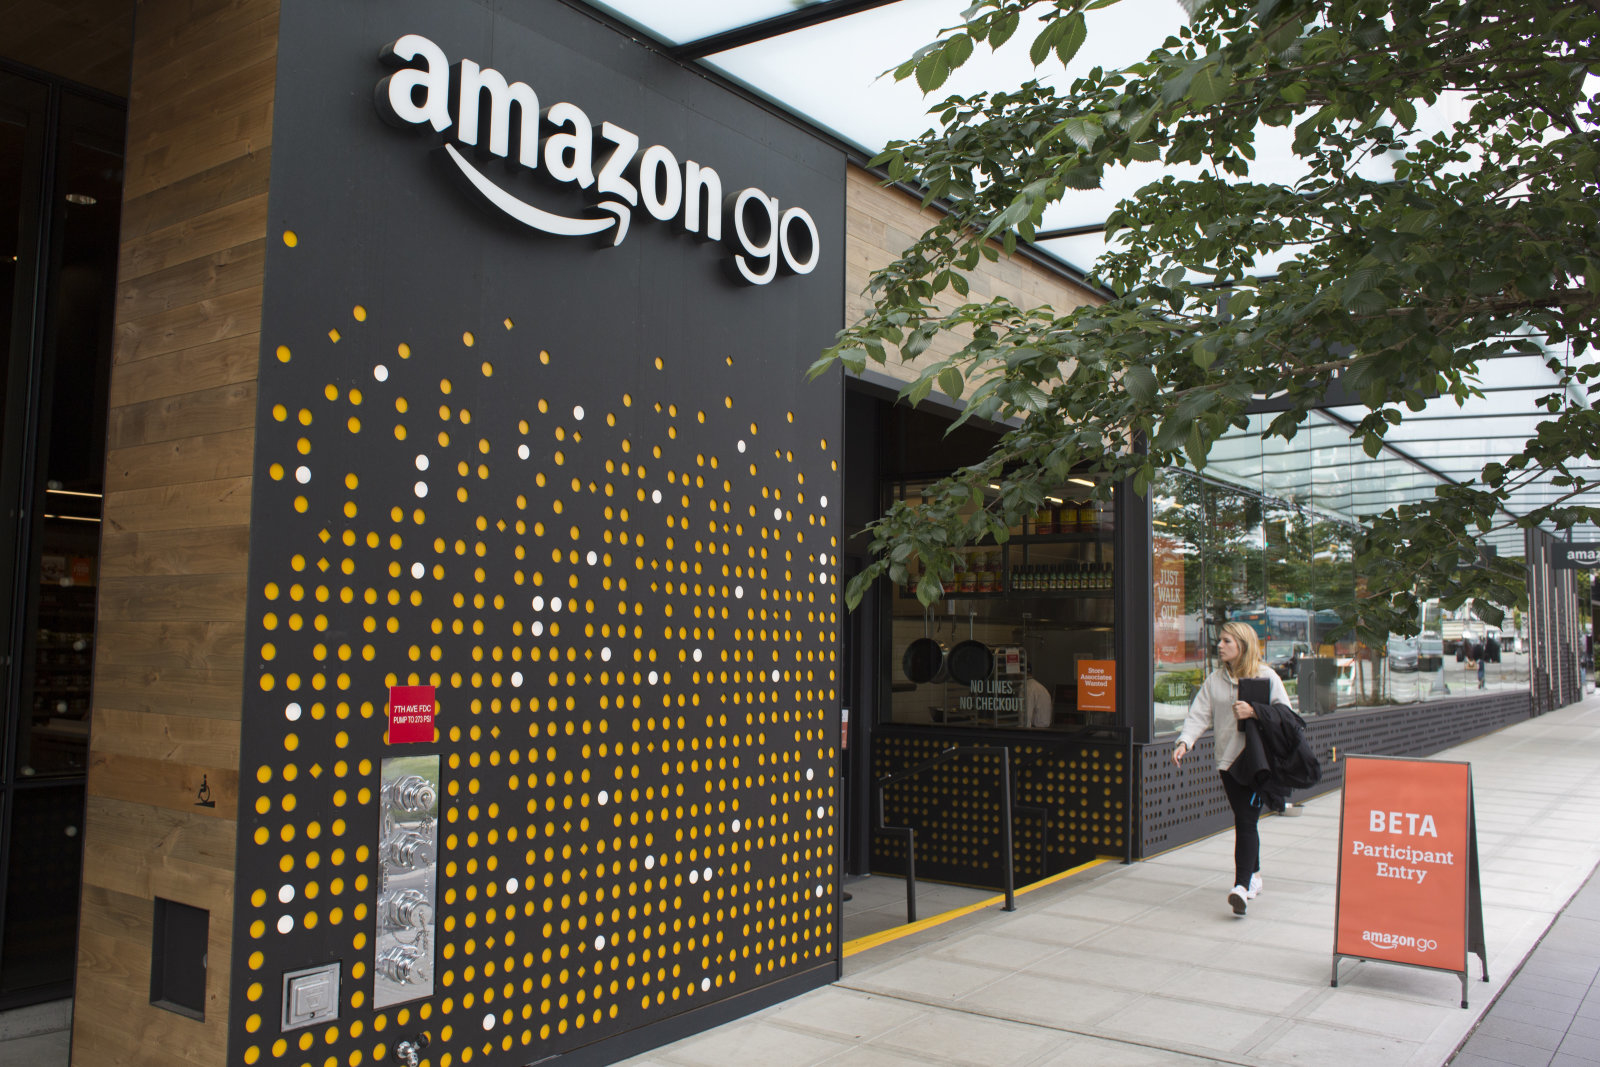 SEATTLE, WA - JUNE 16: A woman walks past the Amazon Go grocery store at the Amazon corporate headquarters on June 16, 2017 in Seattle, Washington. Amazon announced that it will buy Whole Foods Market, Inc. for over $13 billion.  (Photo by David Ryder/Getty Images)